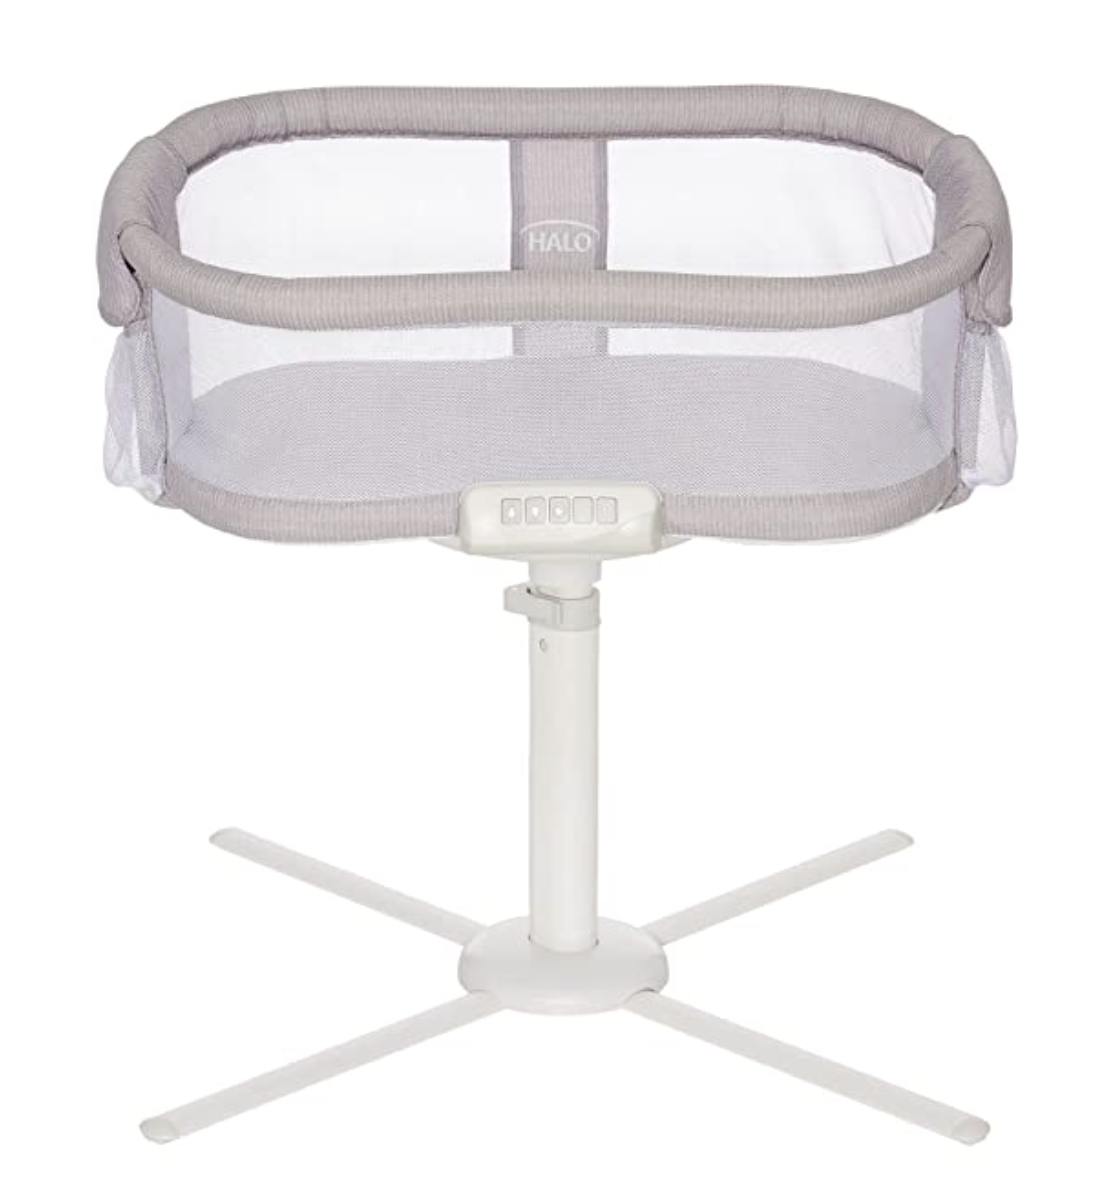 Best_Bassinet_For_Breastfeeding_HaloBassinest_Hushandlullbaby